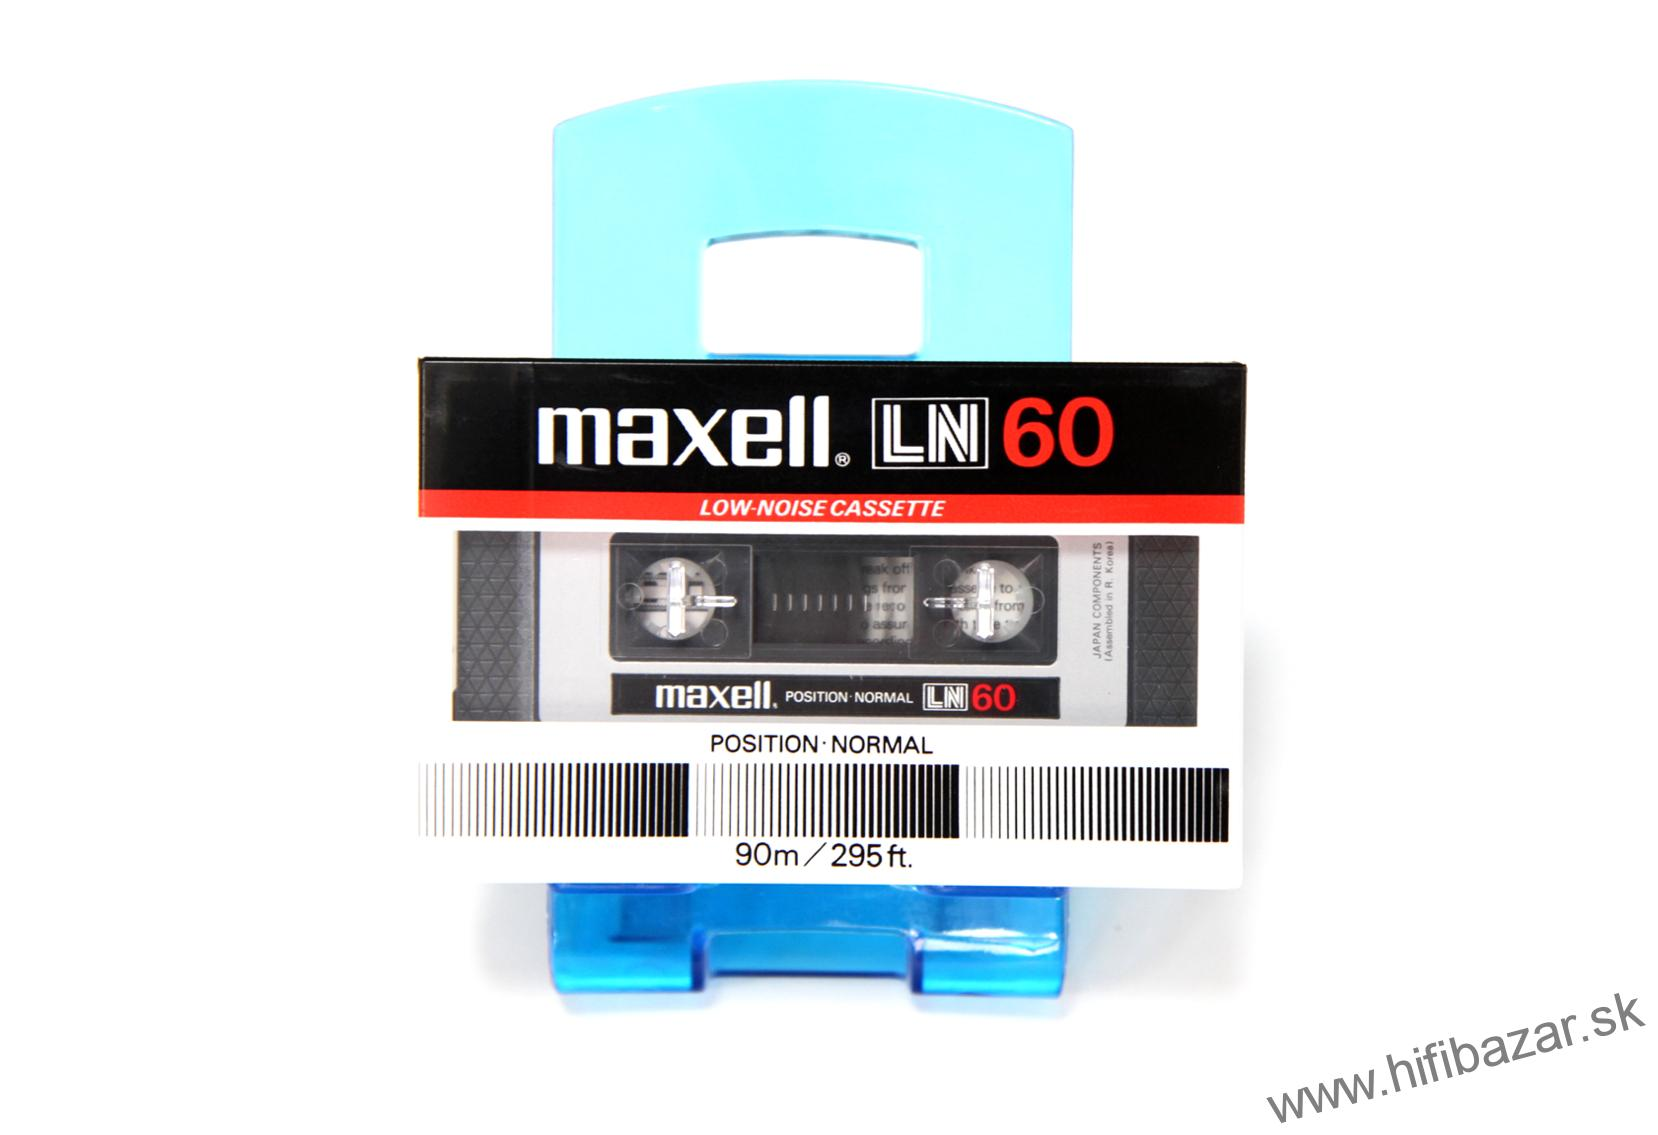 MAXELL LN-60 Position Normal